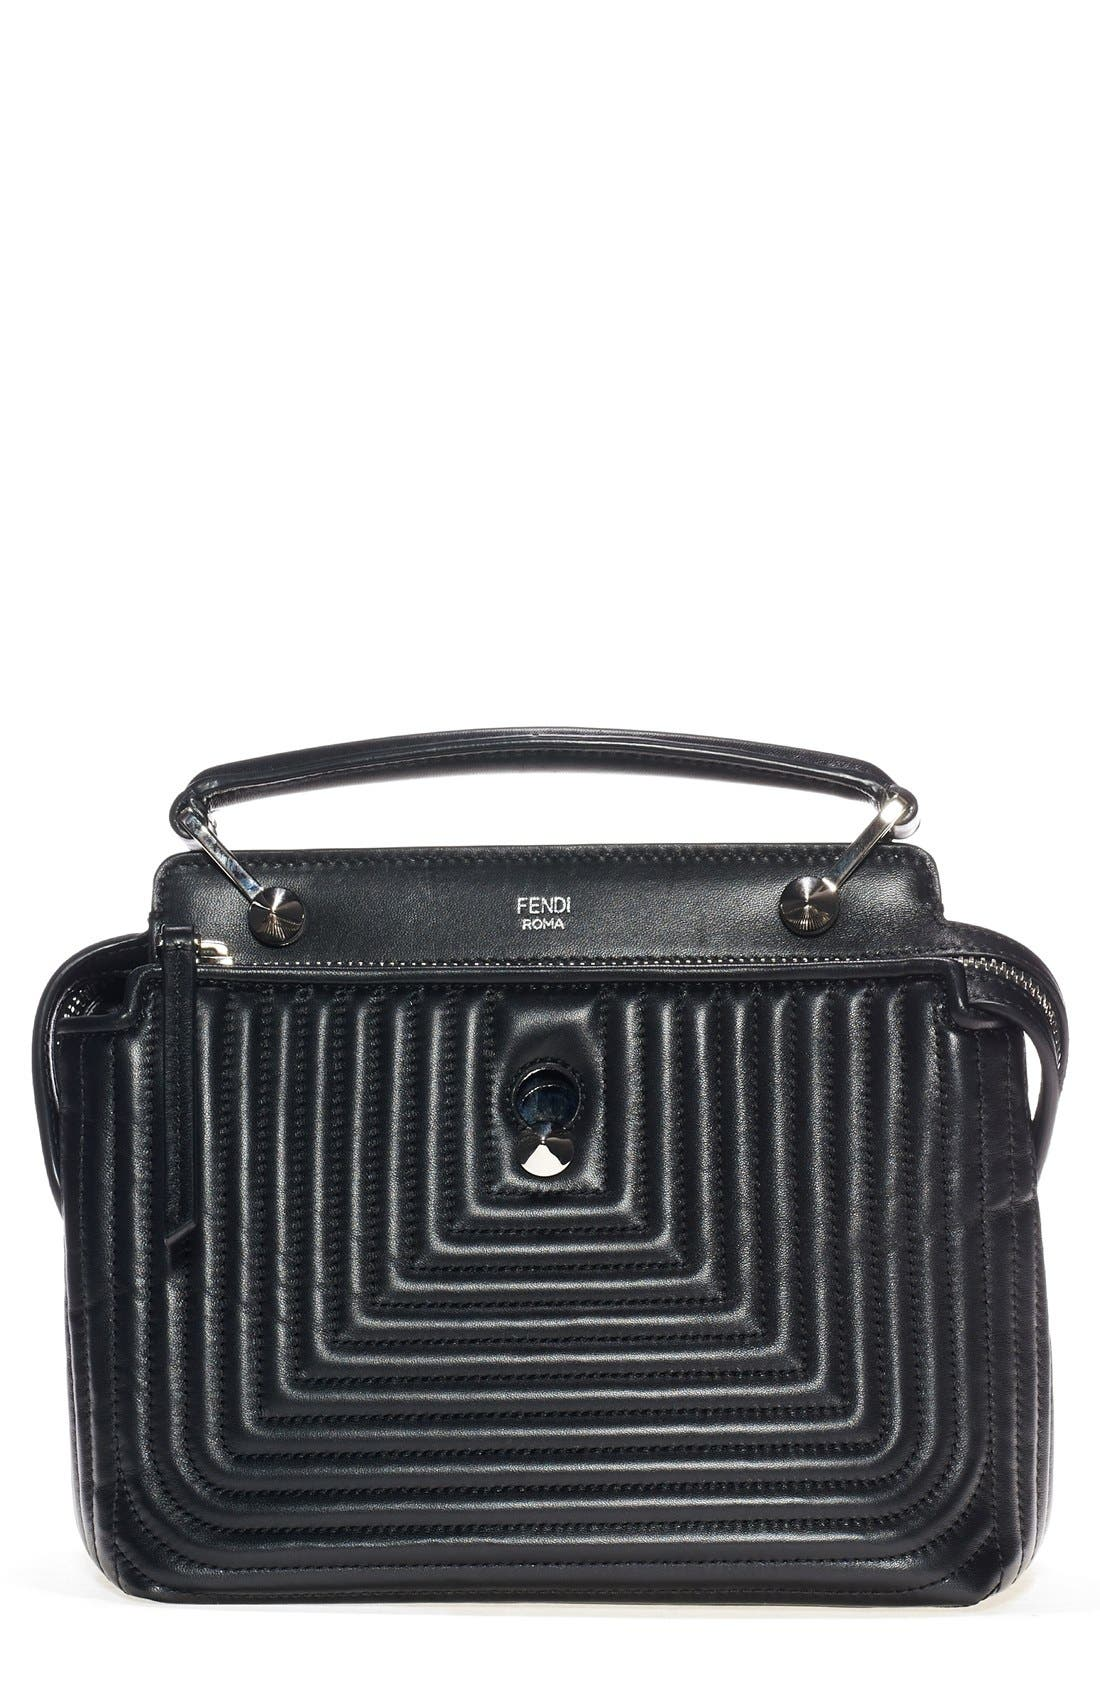 Alternate Image 1 Selected - Fendi 'DOTCOM Click' Quilted Leather Satchel